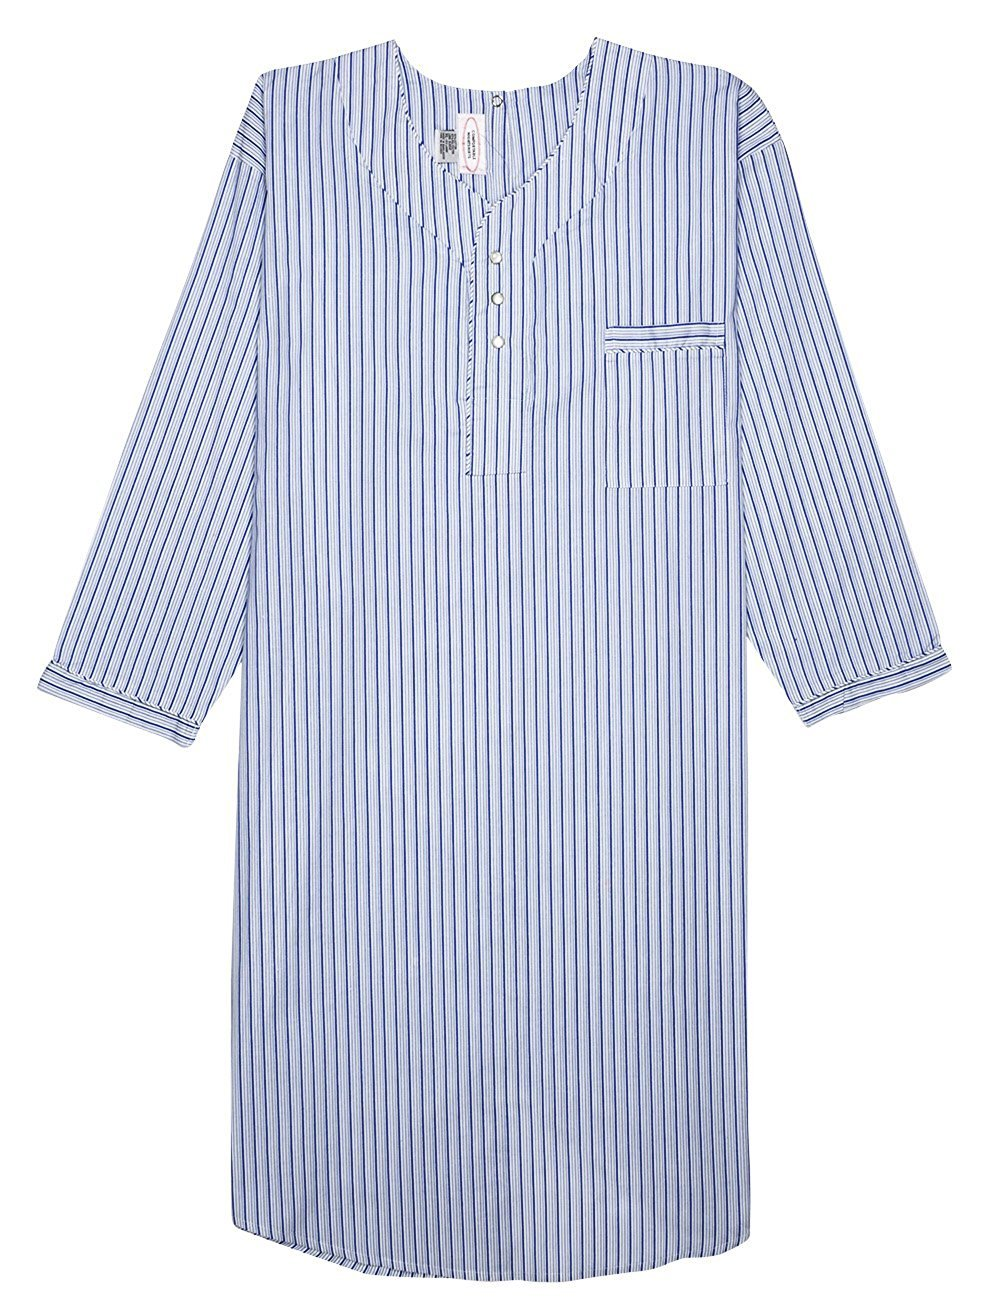 Men's Comfortable Cotton/Poly Back Snap Nightshirt Gown Long Sleeve Size L - Blue & Navy Striped